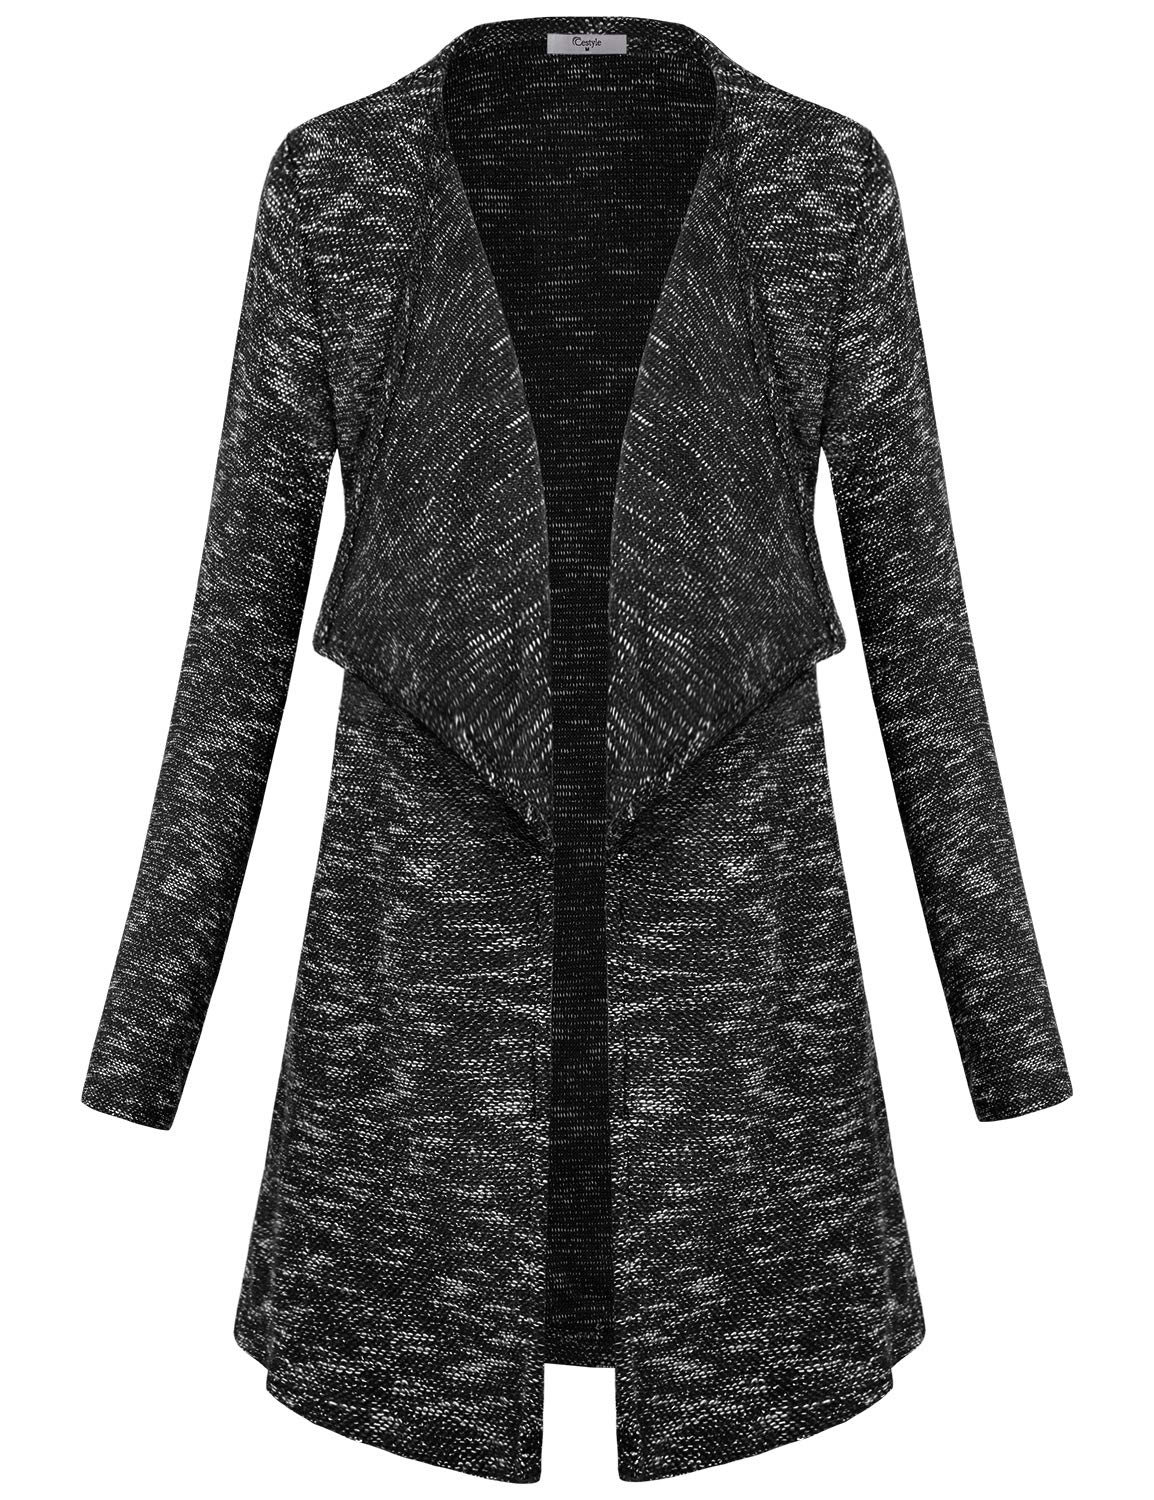 Cestyle Black Cardigan,Open Front Tunic Jacket Sweater Long Sleeve Lapel Neck Two Pockets Dress Cover Up Fine Knit Coverup Tops Modern Business Casual Clothes for Women Large